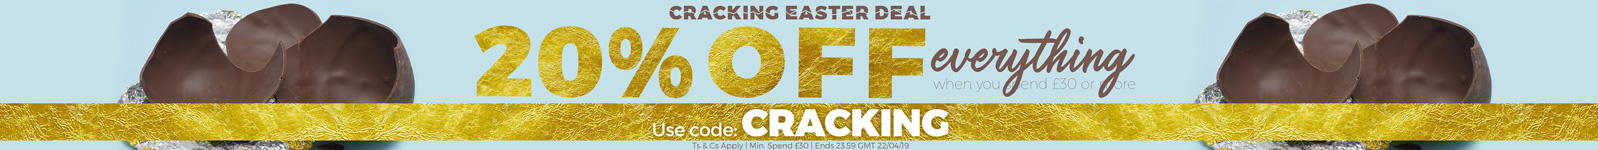 19-04 Easter 20% off Weekend